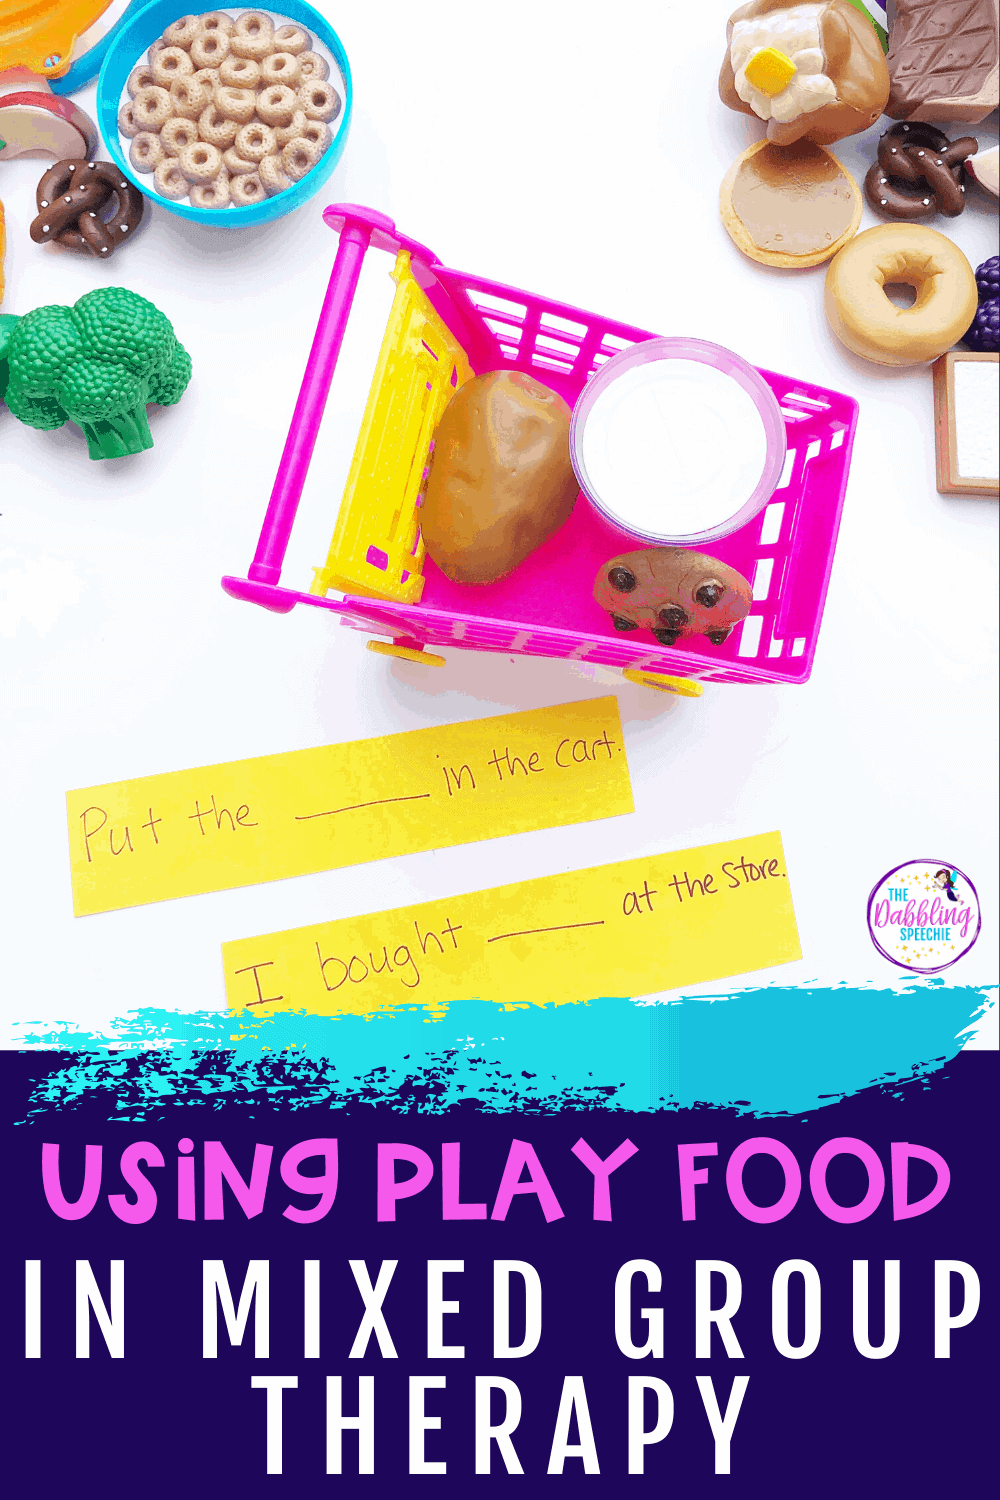 Play food is SUCH a big hit with young children. Why not give them space to play with toy food items while also working on essential speech and language skills? Play food sets make for a fantastic addition to your speech therapy materials. Kids love playing with toy food, and you can work on targets like sequencing, CORE vocabulary, AAC, grammar concepts, and more. Click through to read this post to learn 10 ways that play food can be used in speech therapy! #speechtherapy #SLPs #speechskills